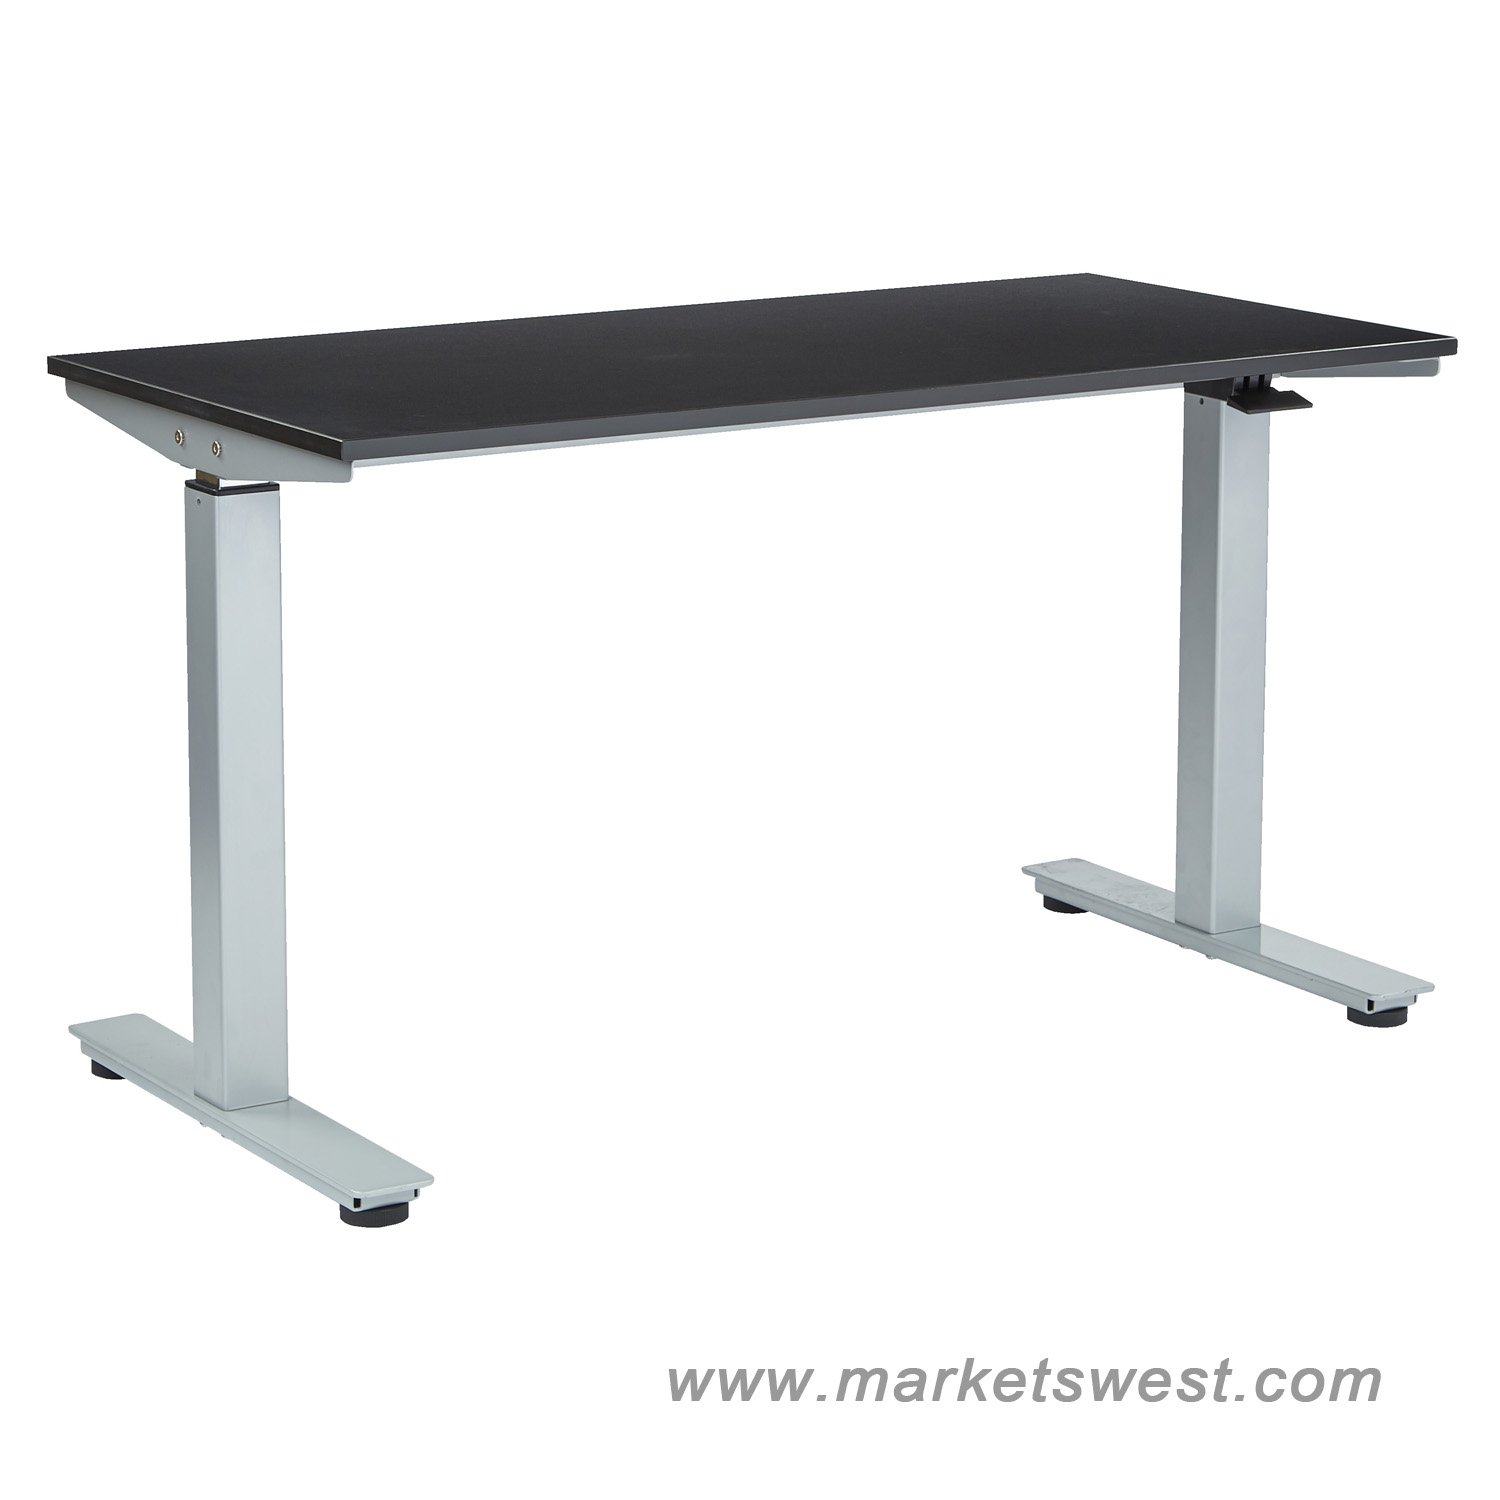 Pneumatic Adjustable Height TableDesk with 36 x 72